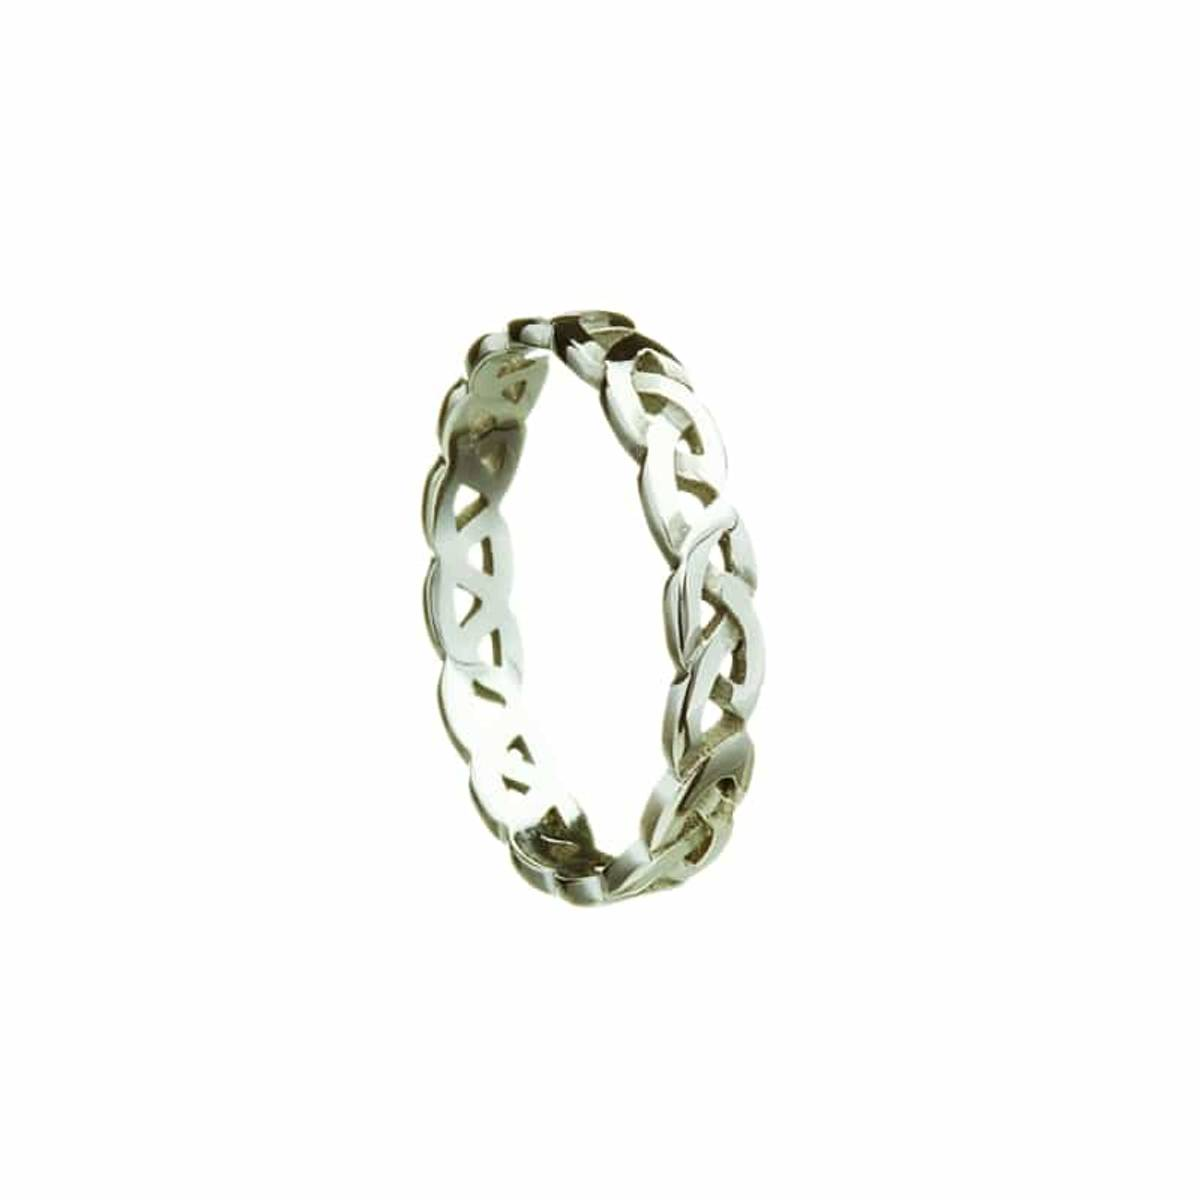 10 ct gents white goldCeltic knot narrow band larger sizes